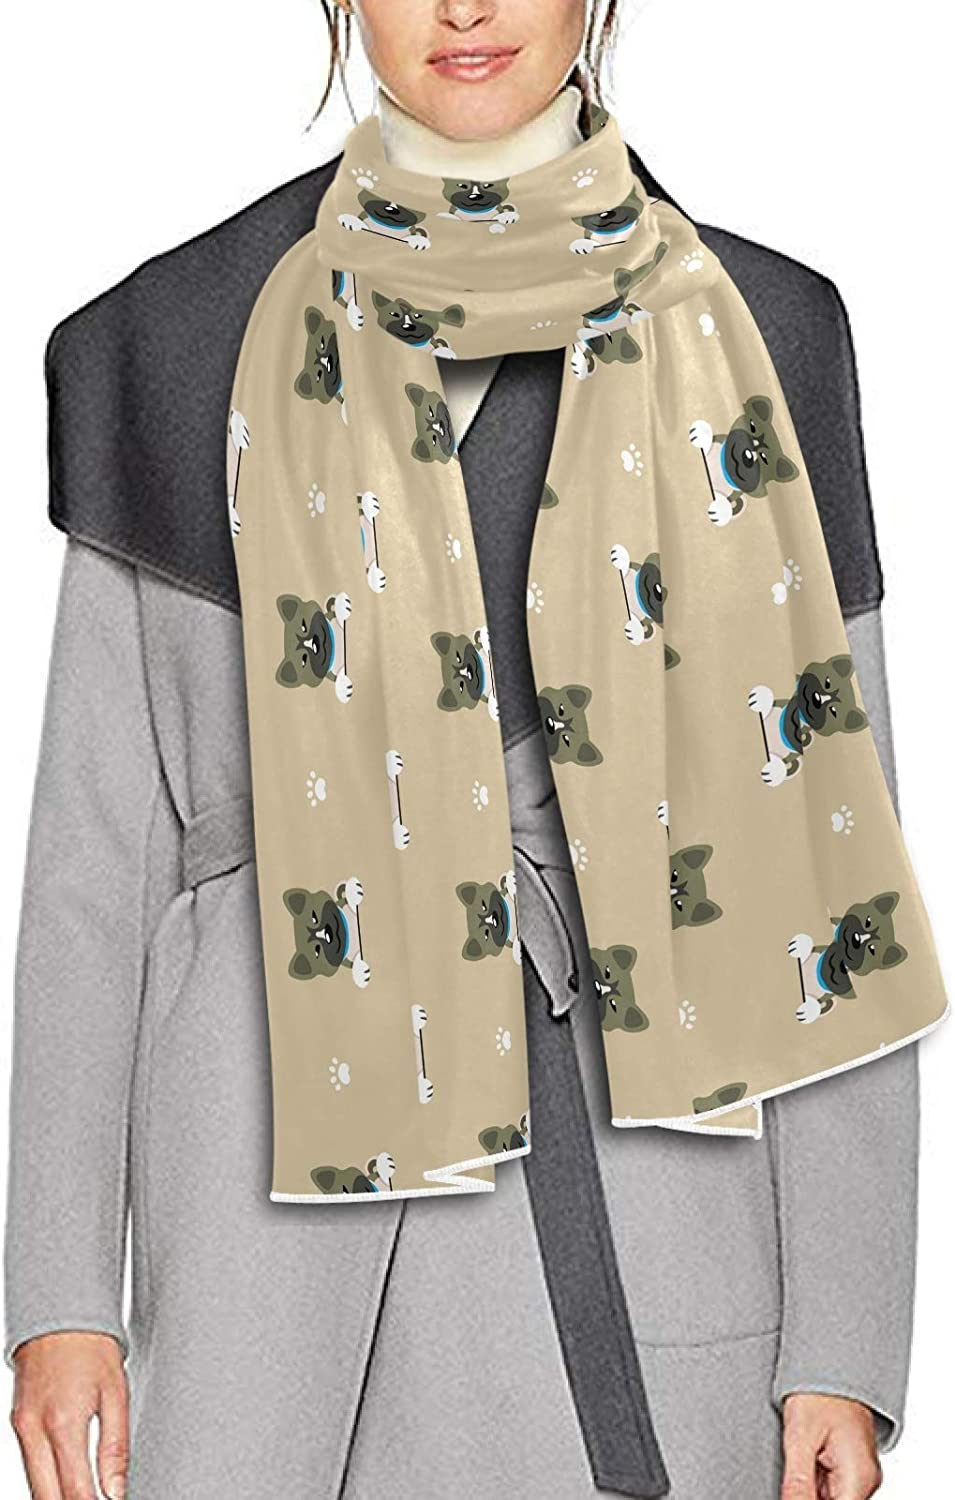 Scarf for Women and Men Character Akita Dog Shawl Wraps Blanket Scarf Warm soft Winter Long Scarves Lightweight